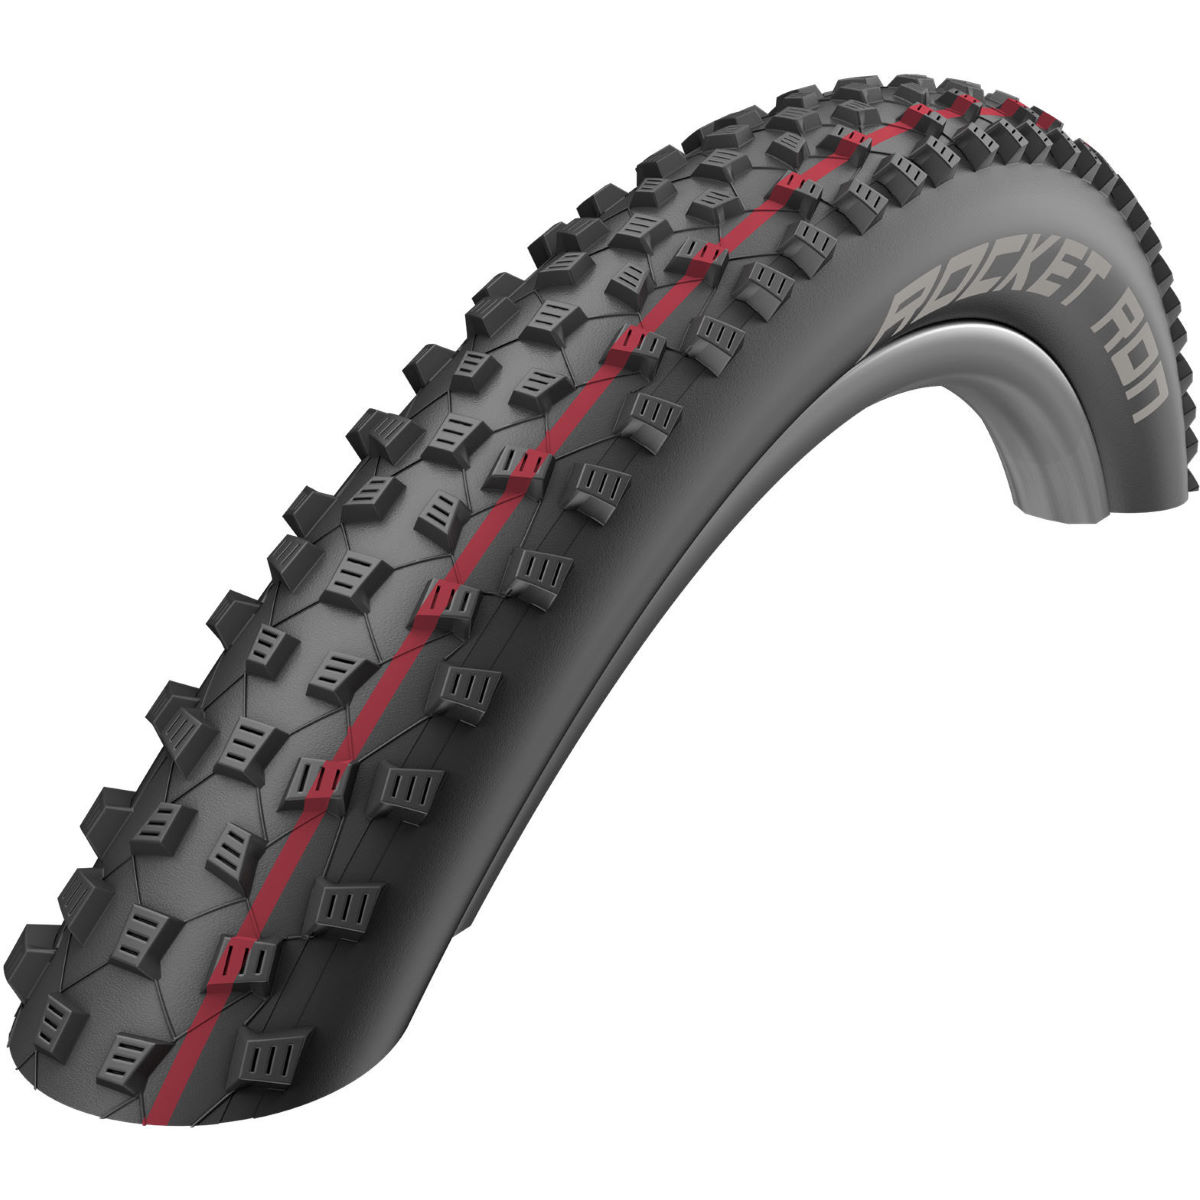 Schwalbe Rocket Ron Addix SnakeSkin Folding MTB Tyre - 2.1' 29' Black / Red Pneus VTT